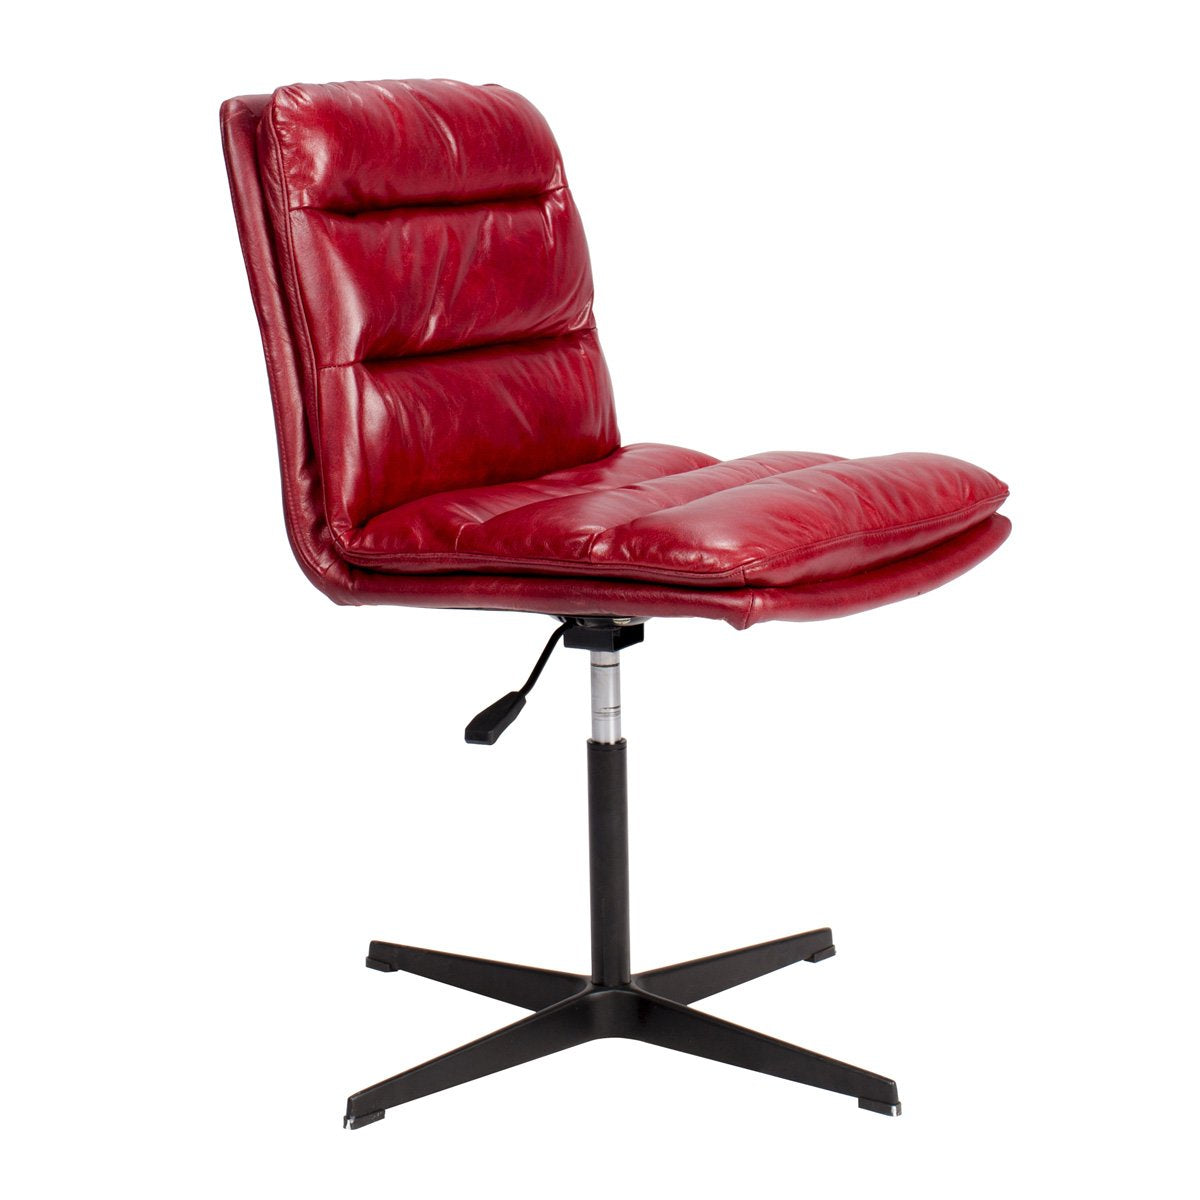 Jett Swivel Chair Red